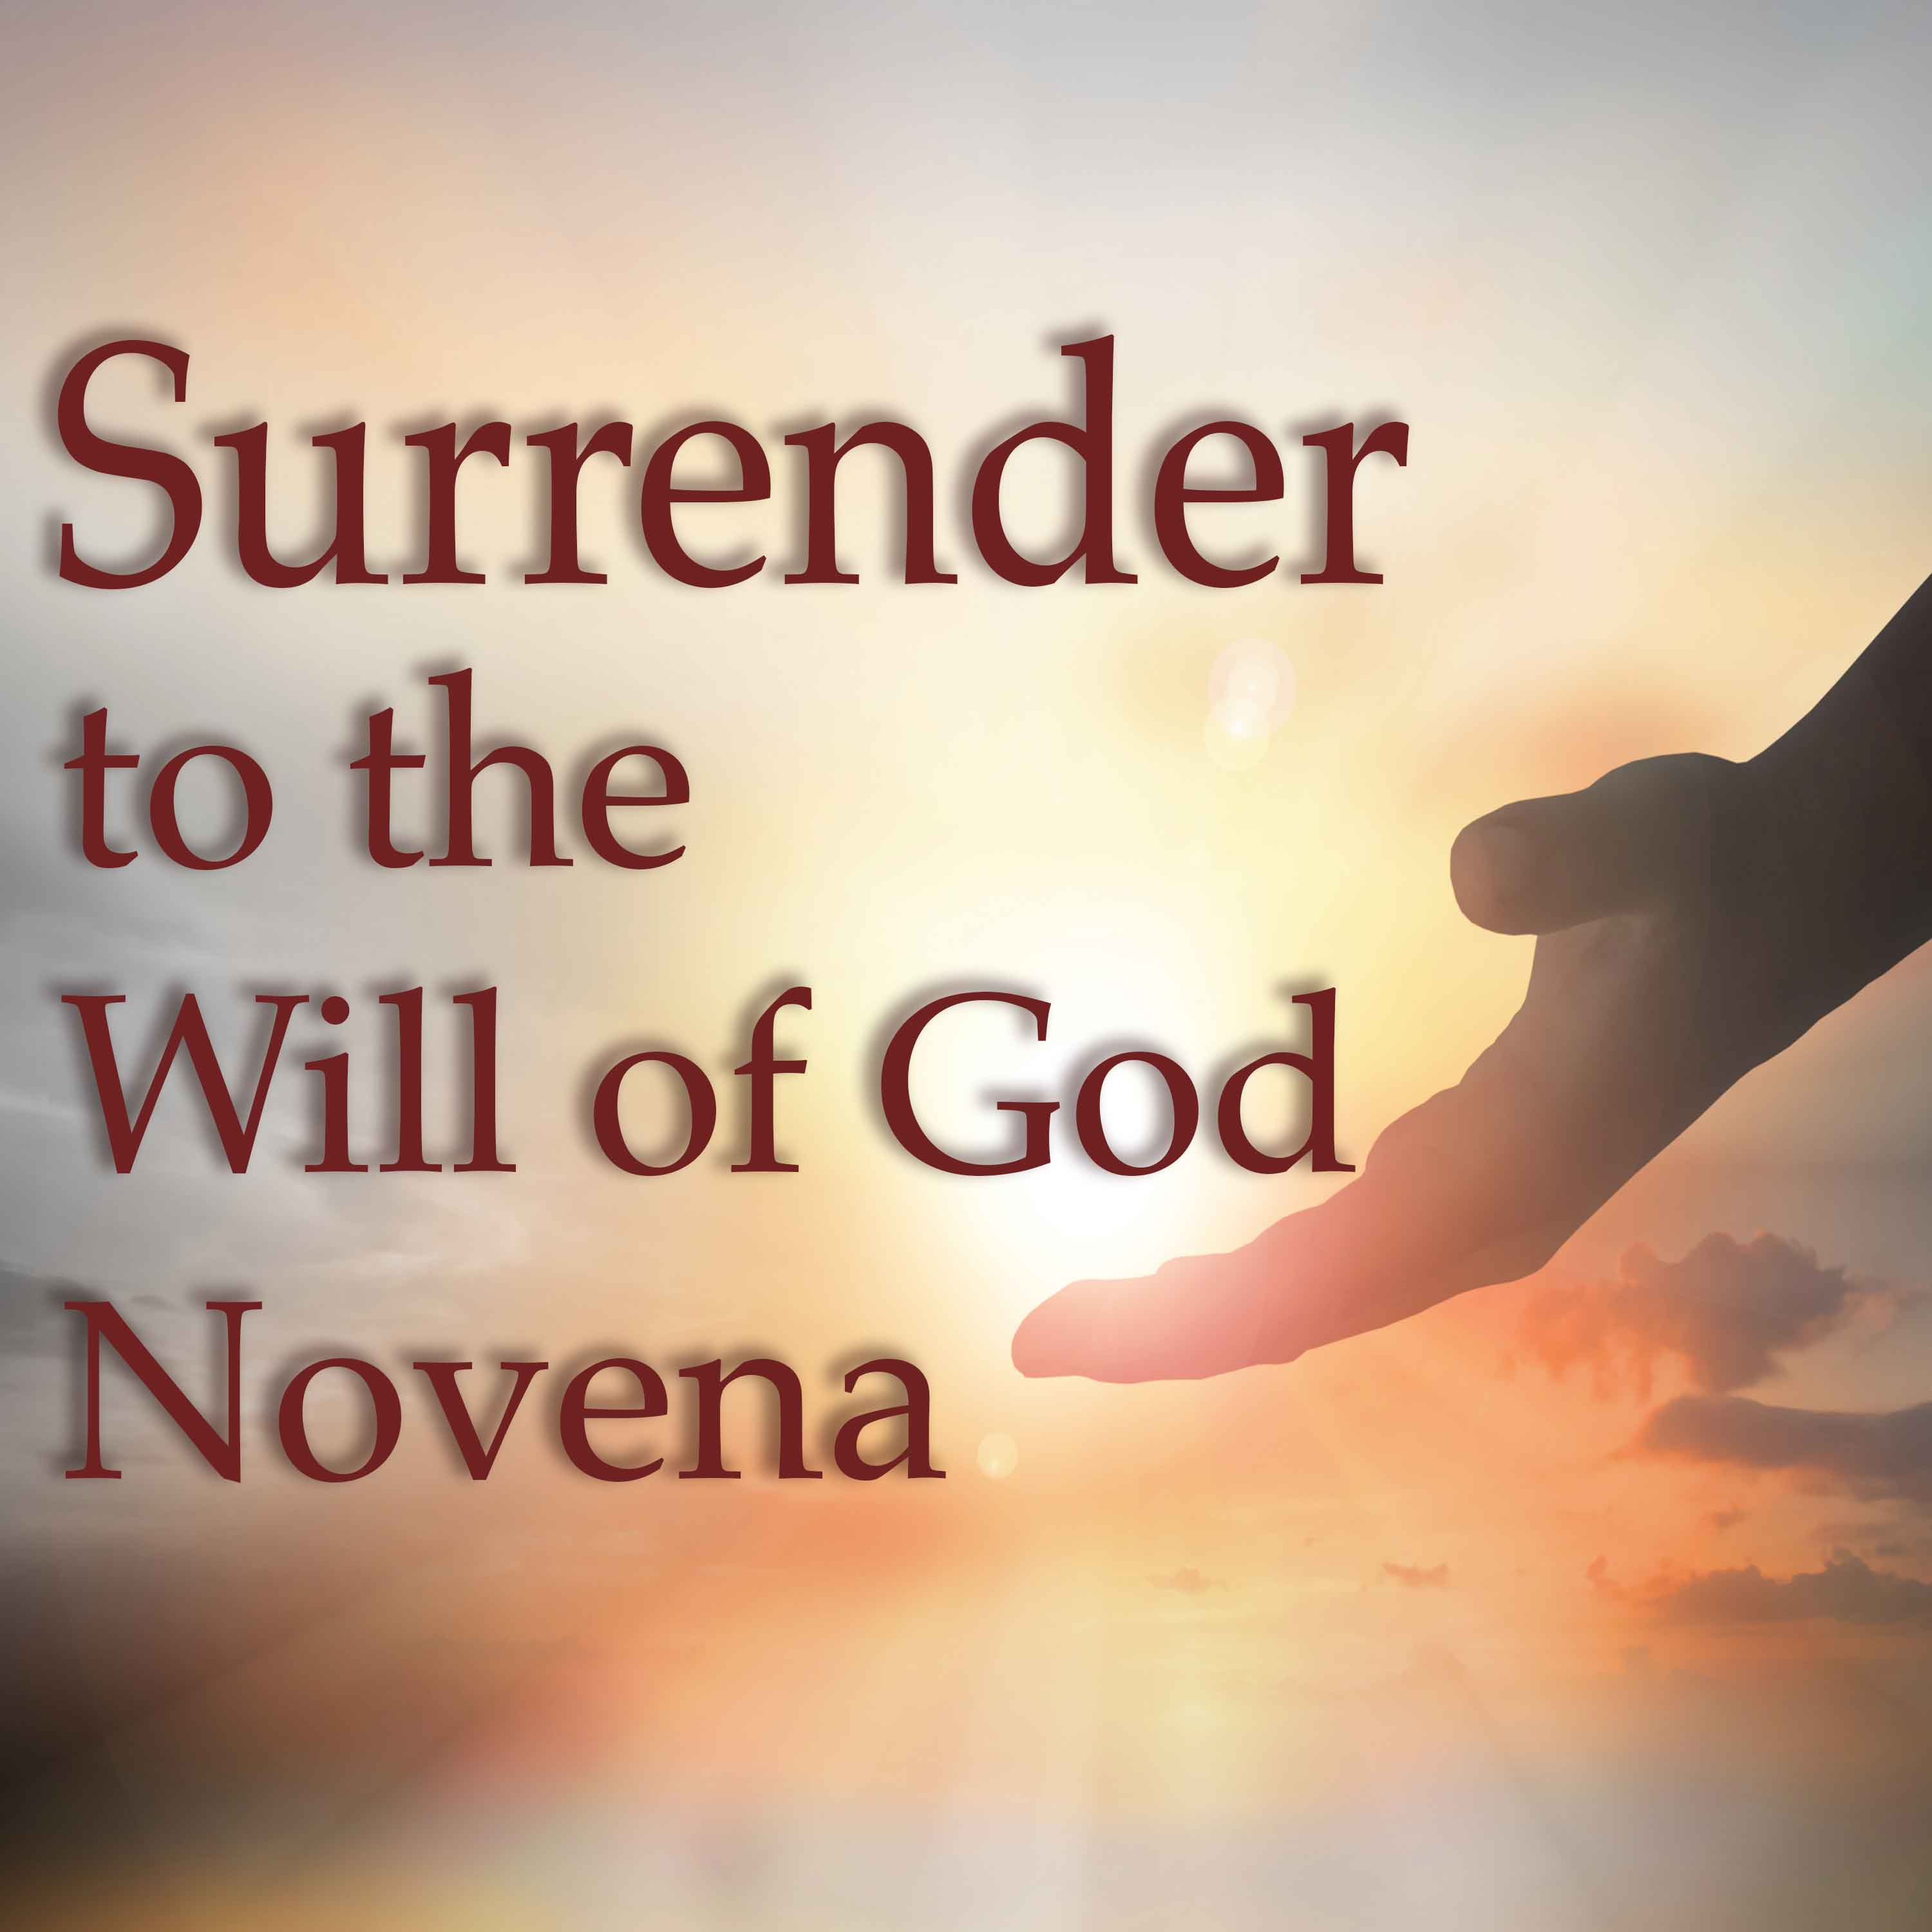 Mp3 Audio Surrender To The Will Of God Novena Mp3 Audio And Text Podcast